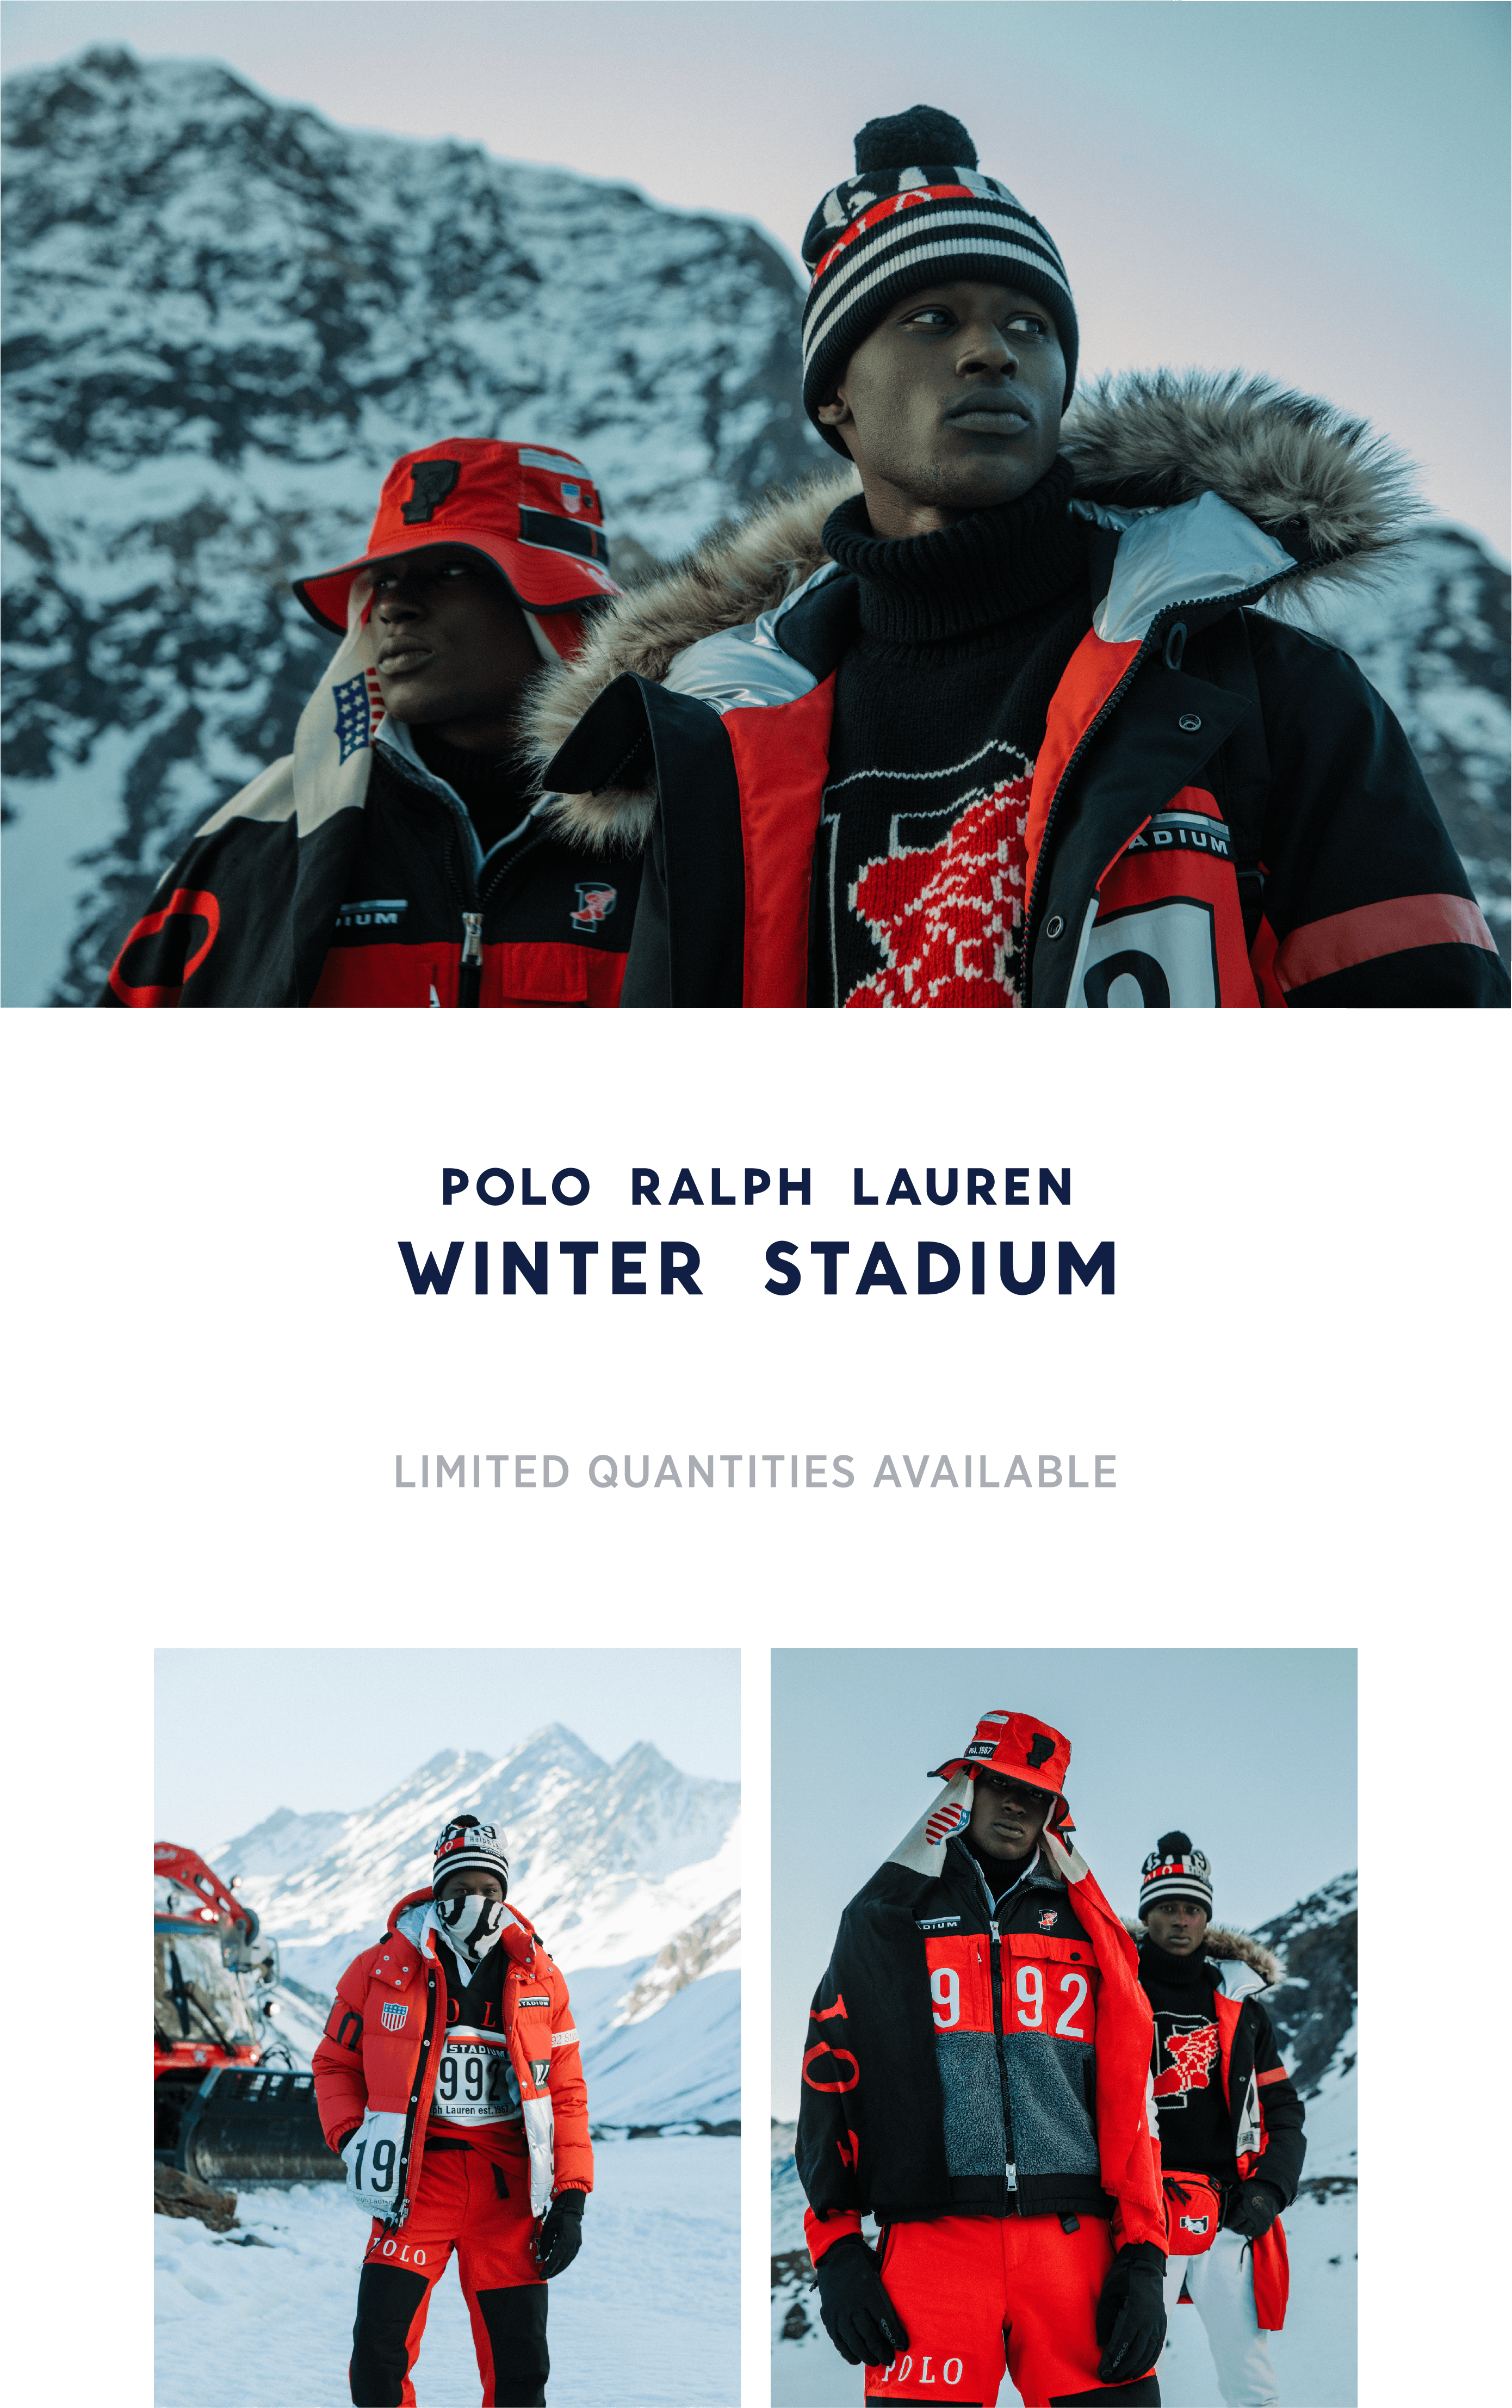 26c8a07b8 Fred Segal: Just Dropped ❄️The Polo Ralph Lauren Winter Stadium ...